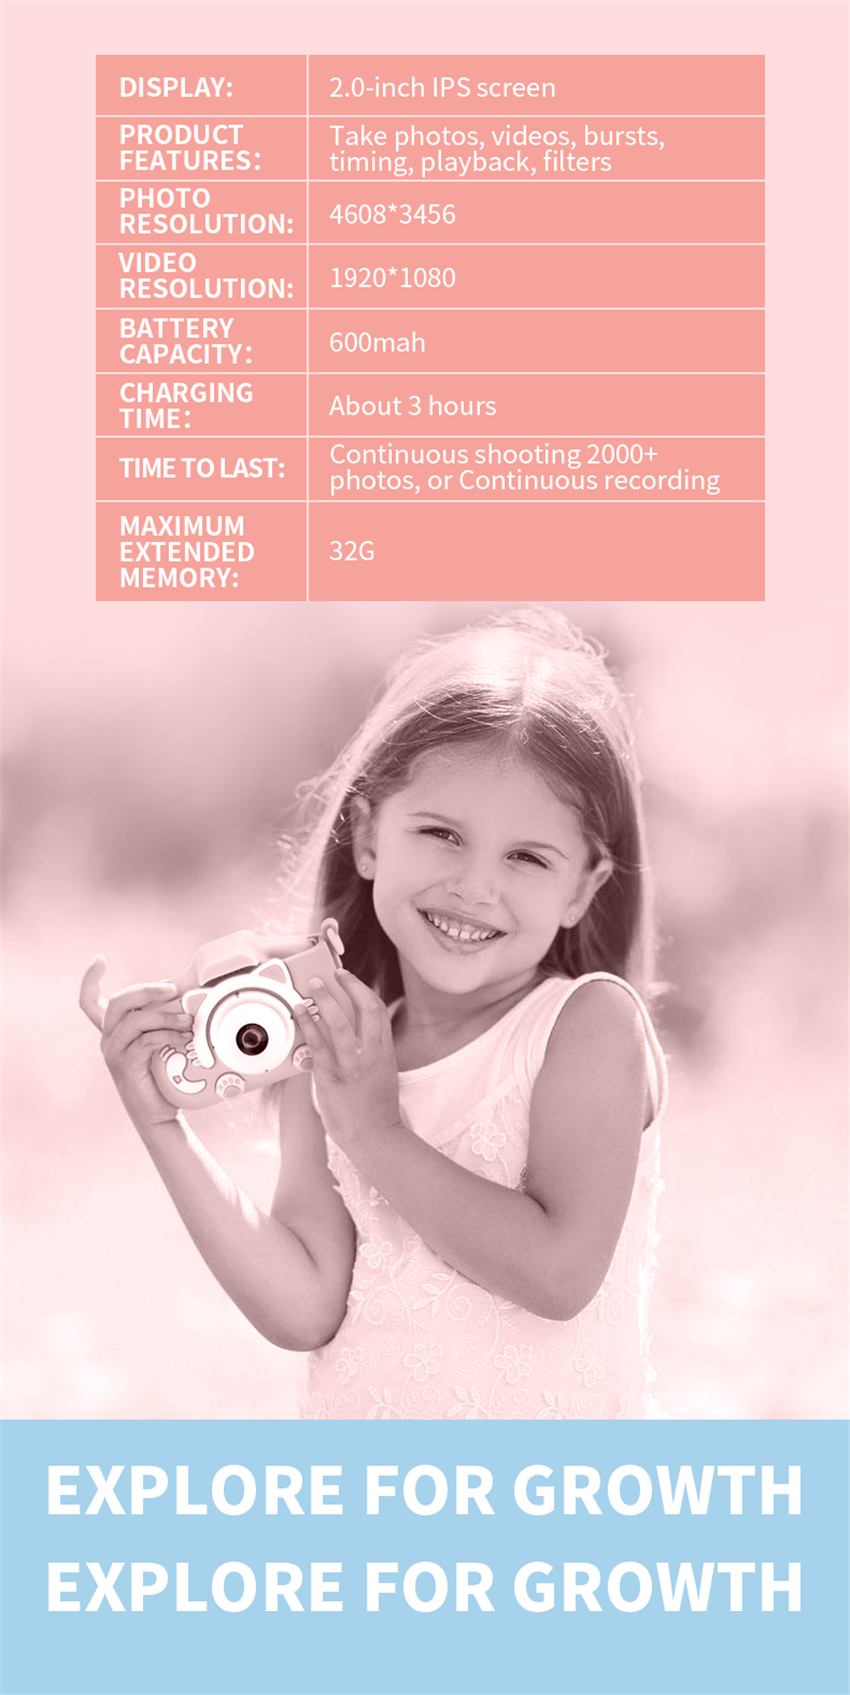 H1c6c9f04a5b44d29b2c0276f51598a11A x8 2.0 inch Screen Kids Camera Mini Digital 12MP Photo Children Camera with 600 mAh Polymer Lithium Battery Toys Gift